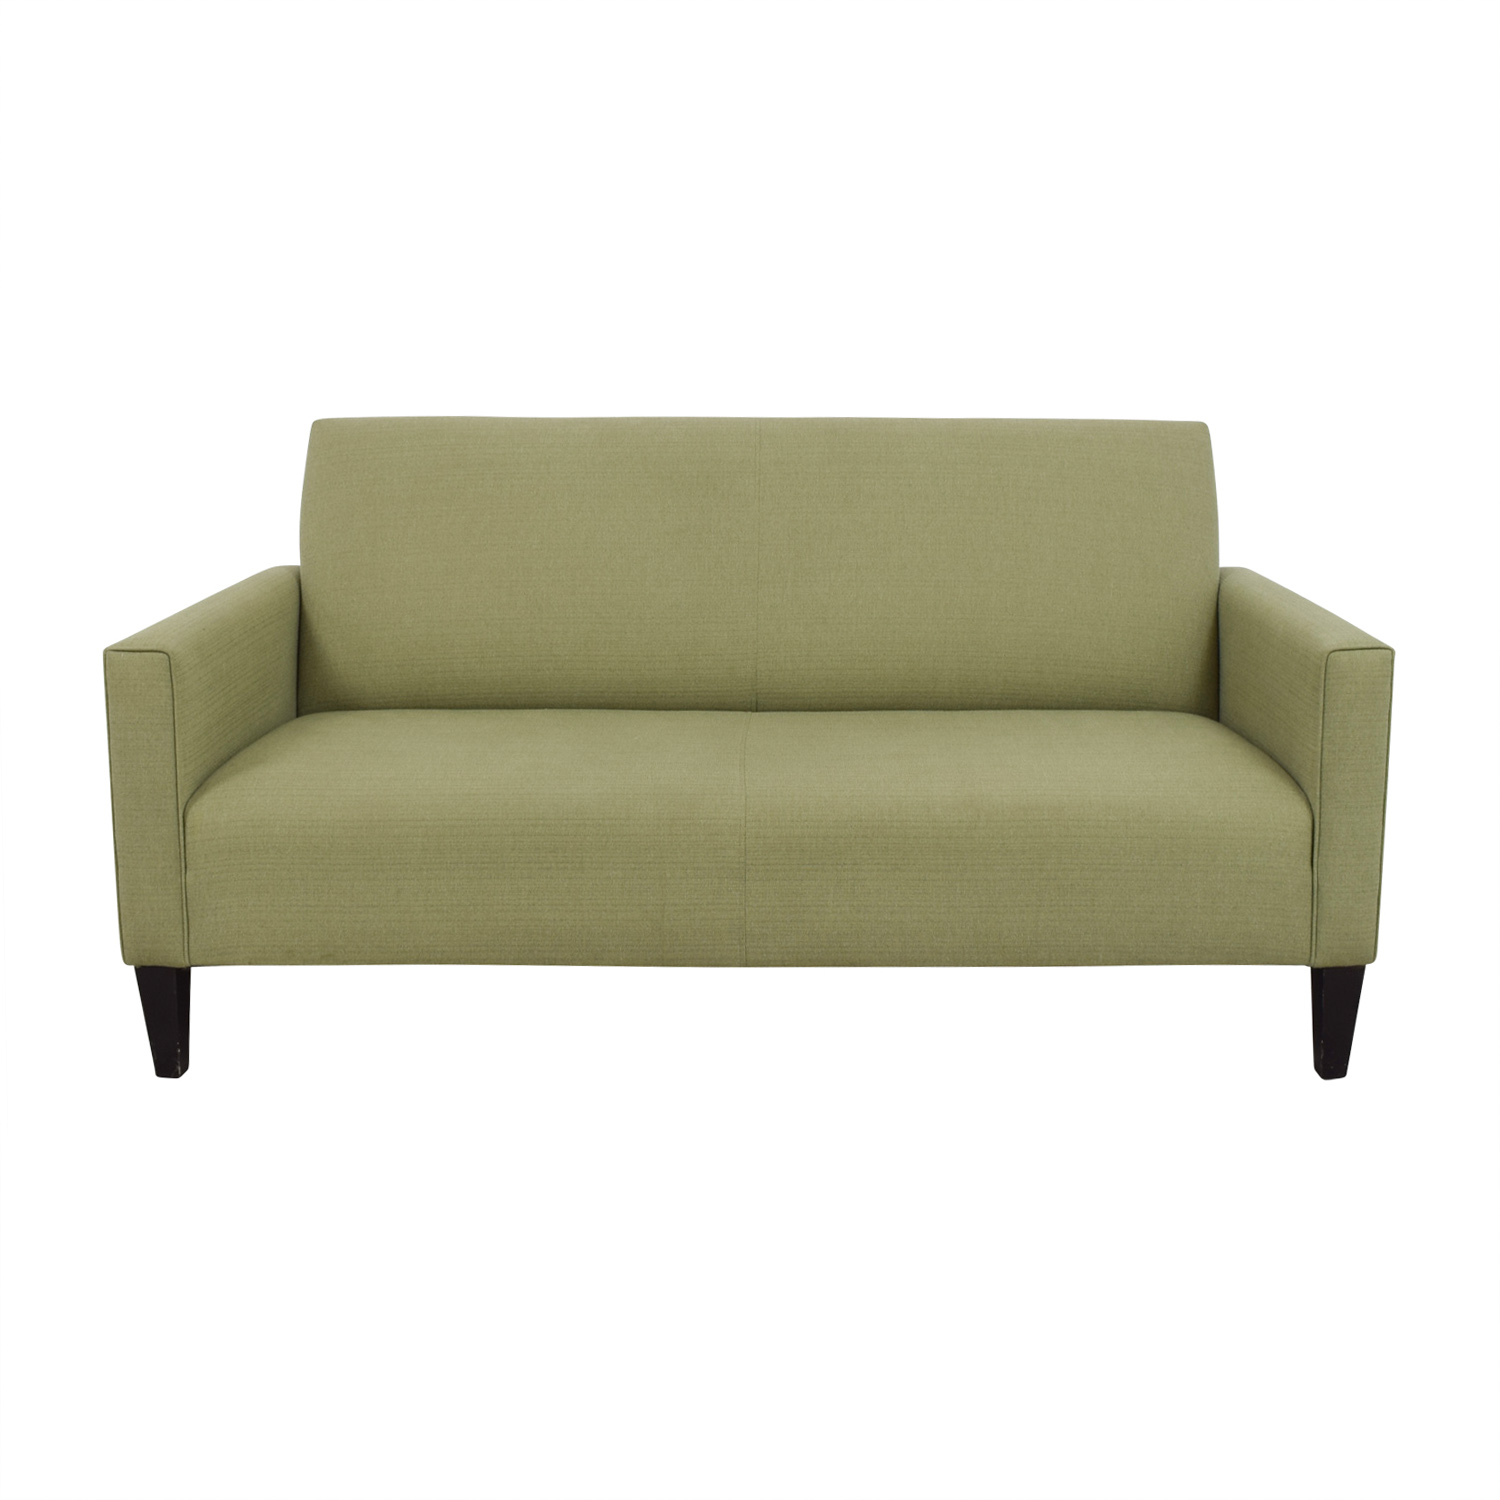 Crate & Barrel Crate & Barrel Moss Green Single Cushion Couch nyc